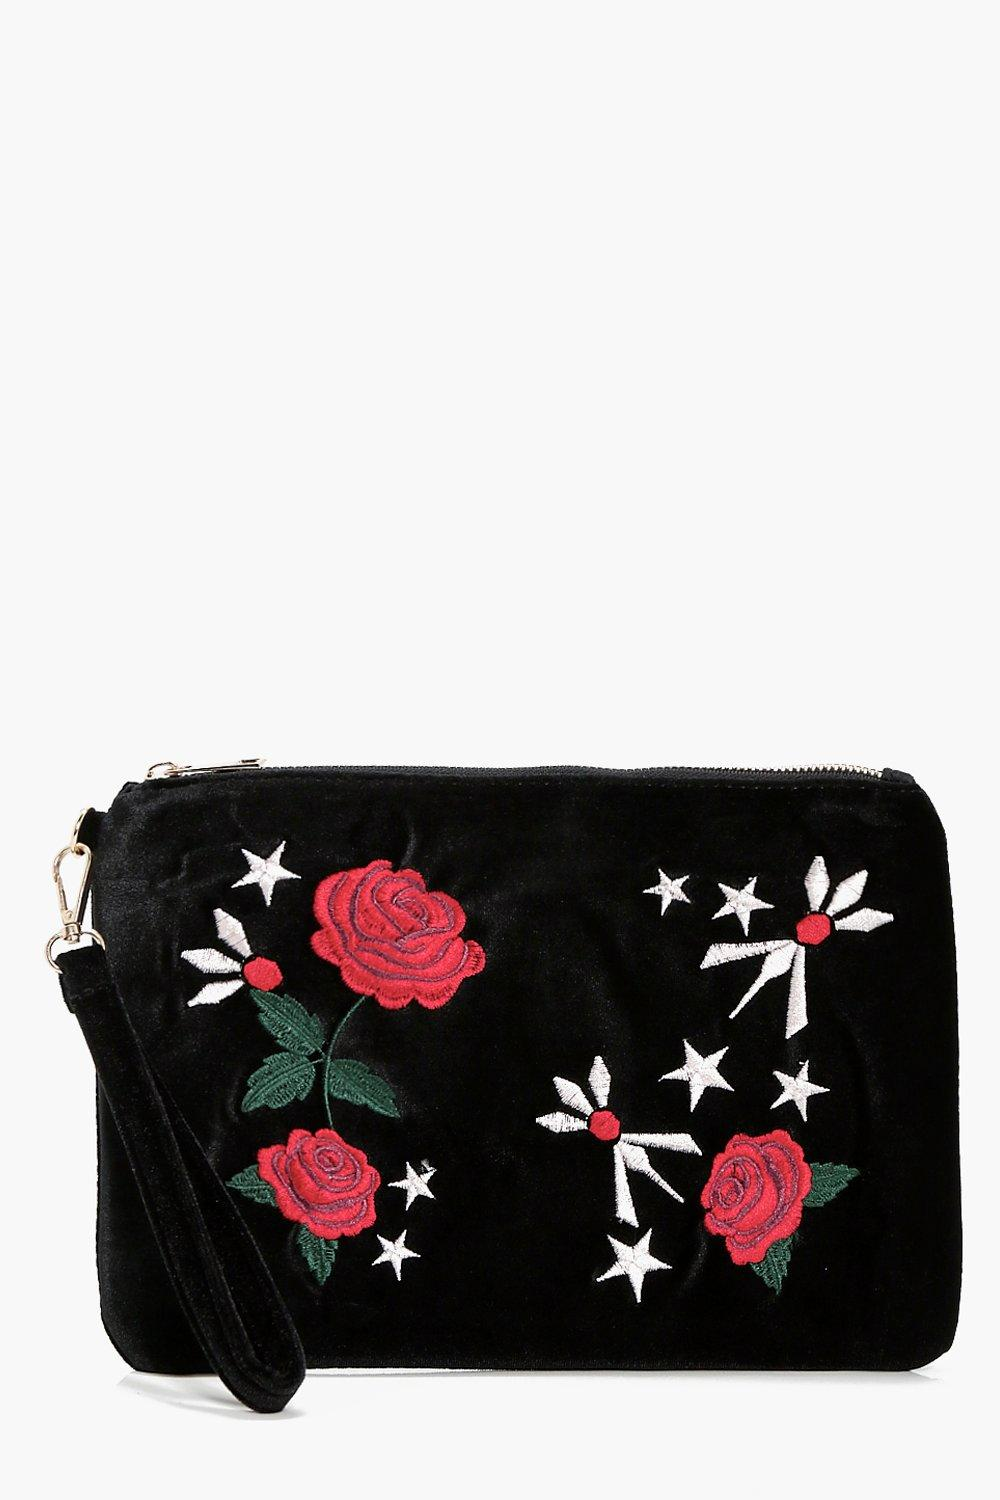 Rose Velvet Embroidered Clutch - black - Kerry Ros